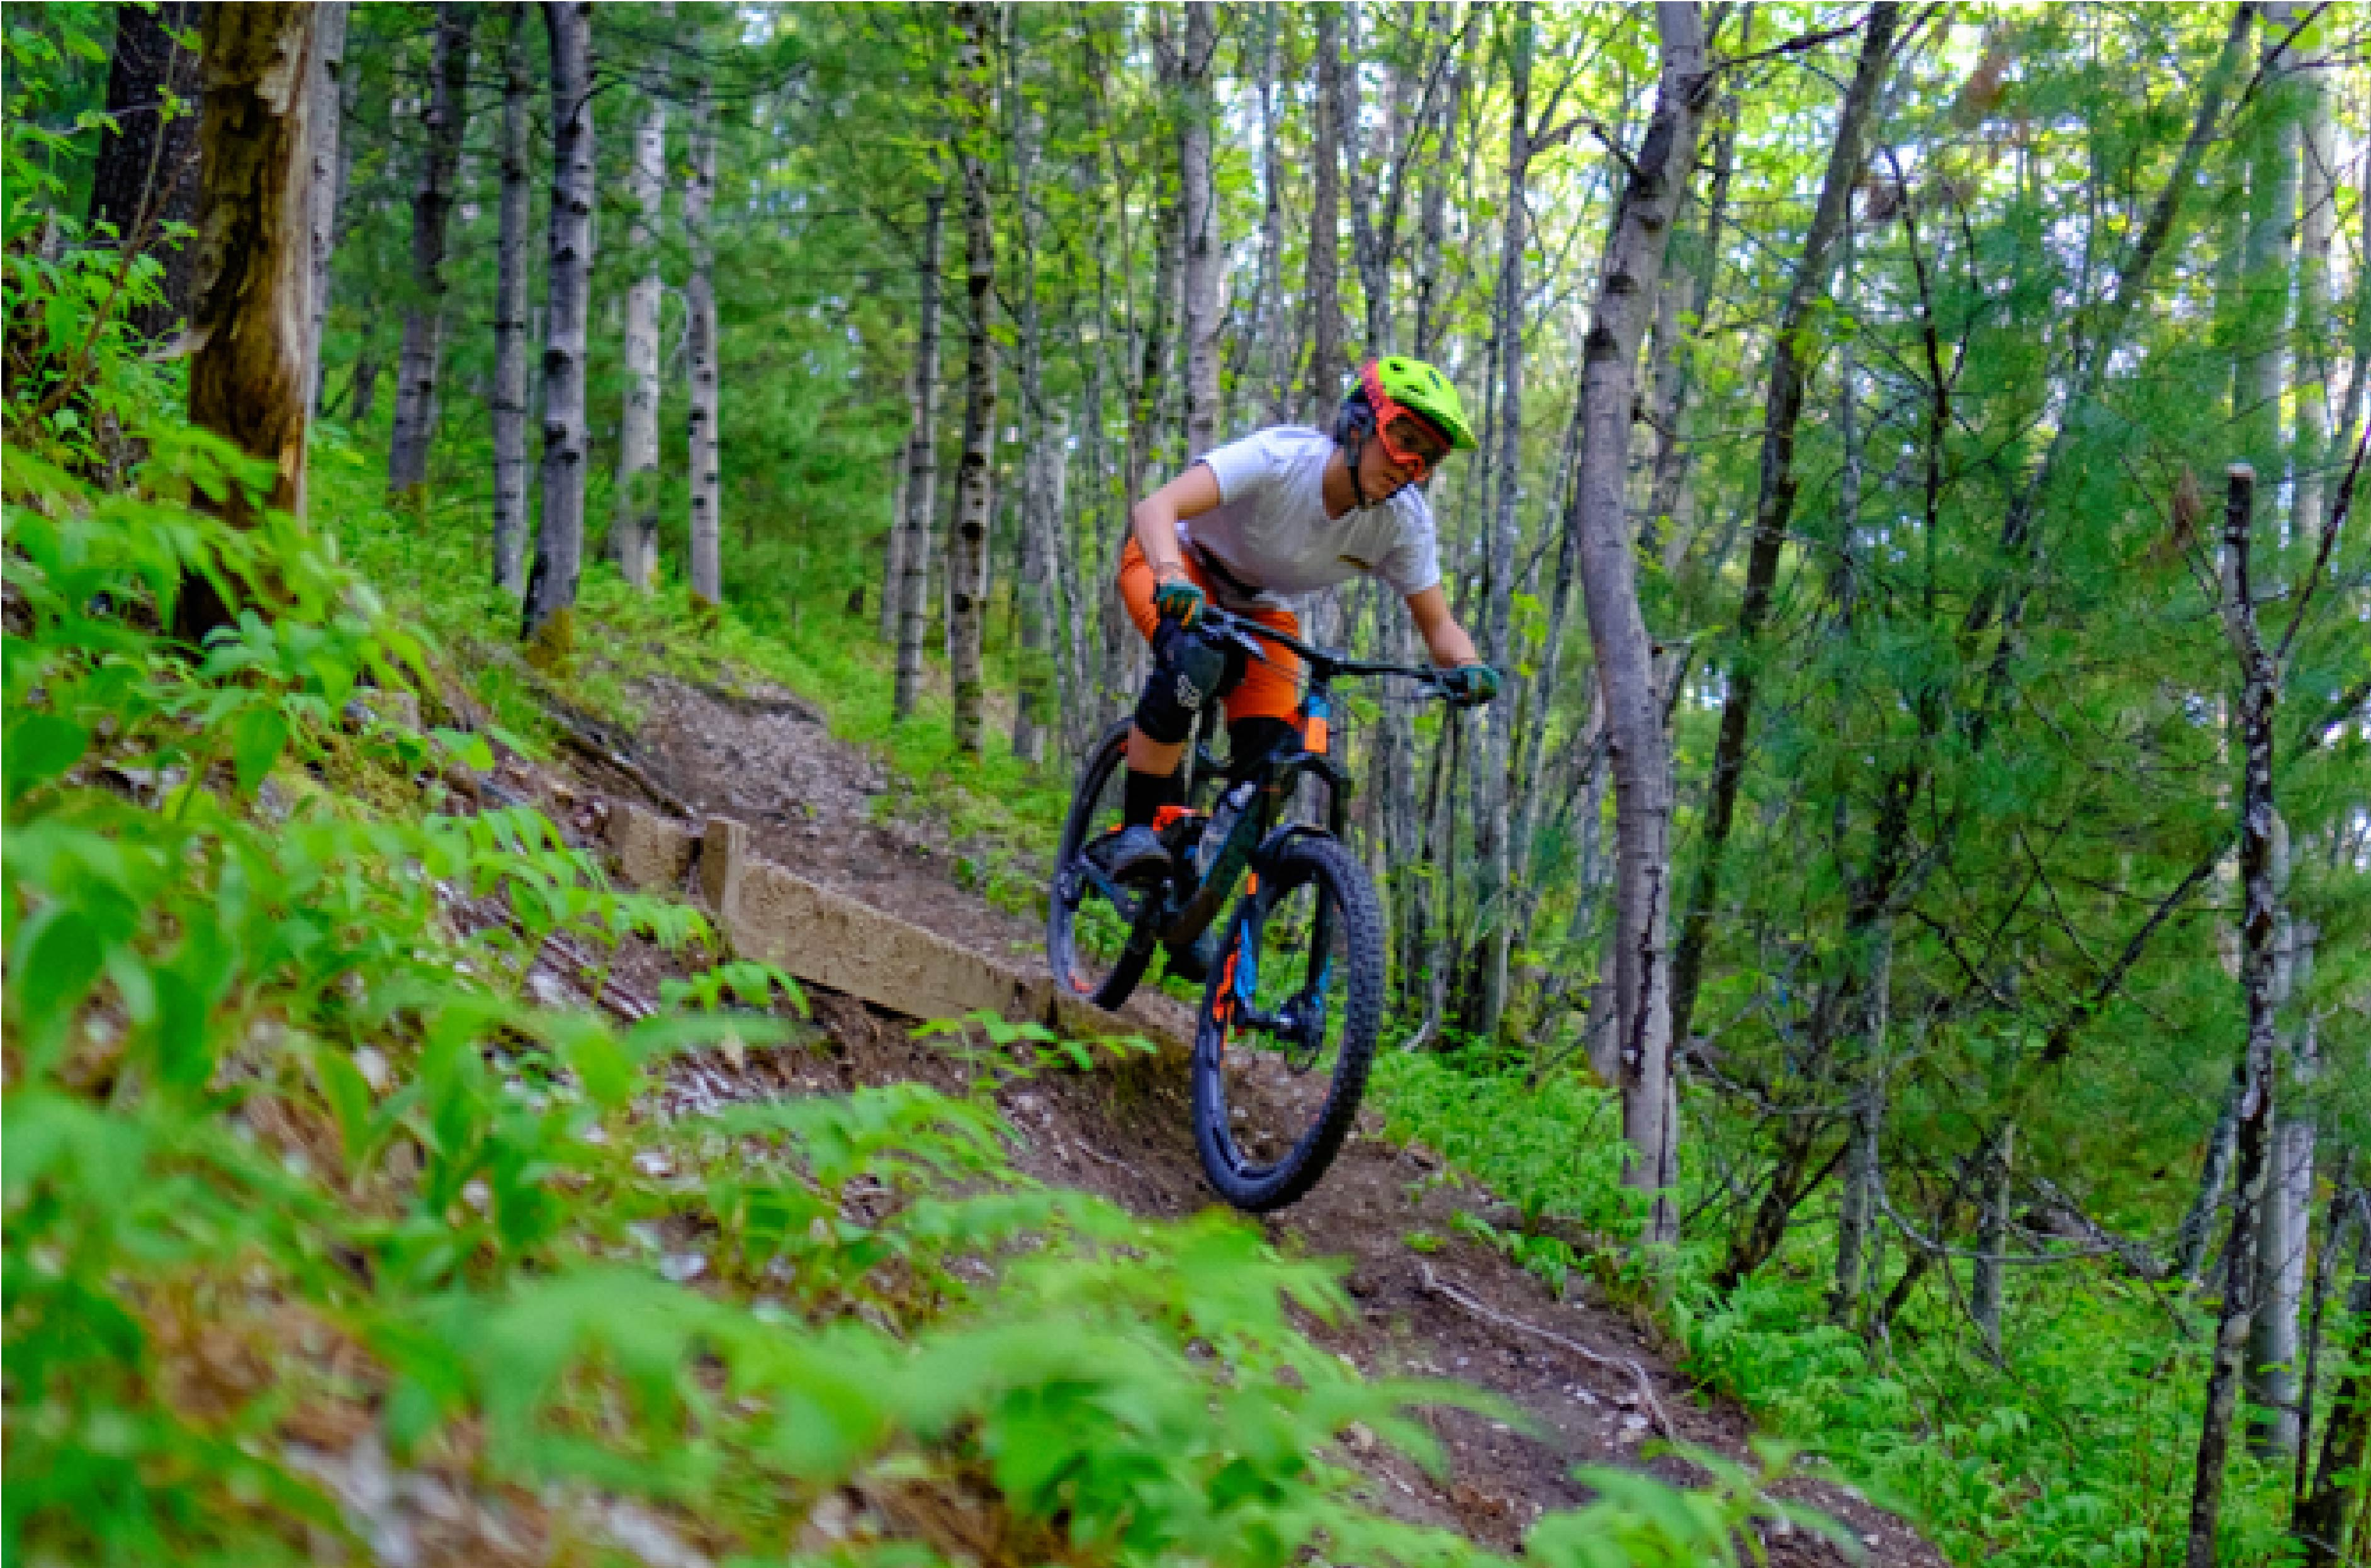 Person riding a bike down a dirt trail with green plants on either side